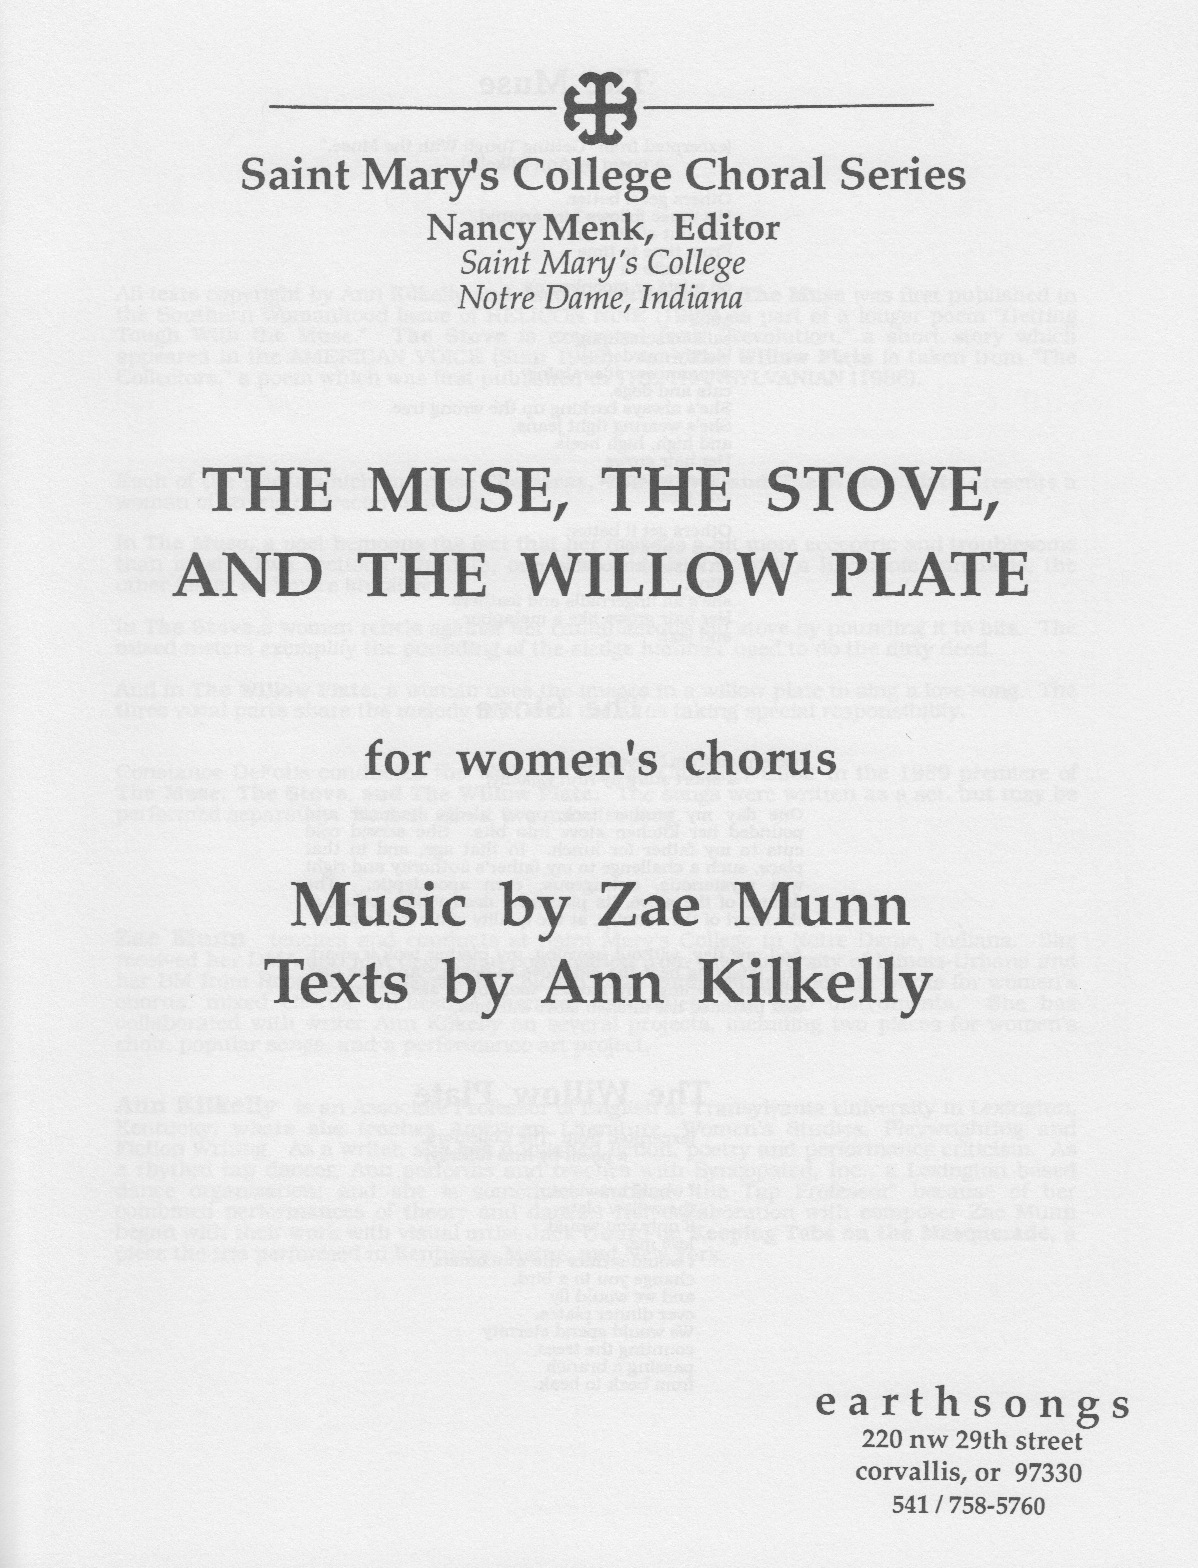 muse, stove, & willow plate (ssaa)